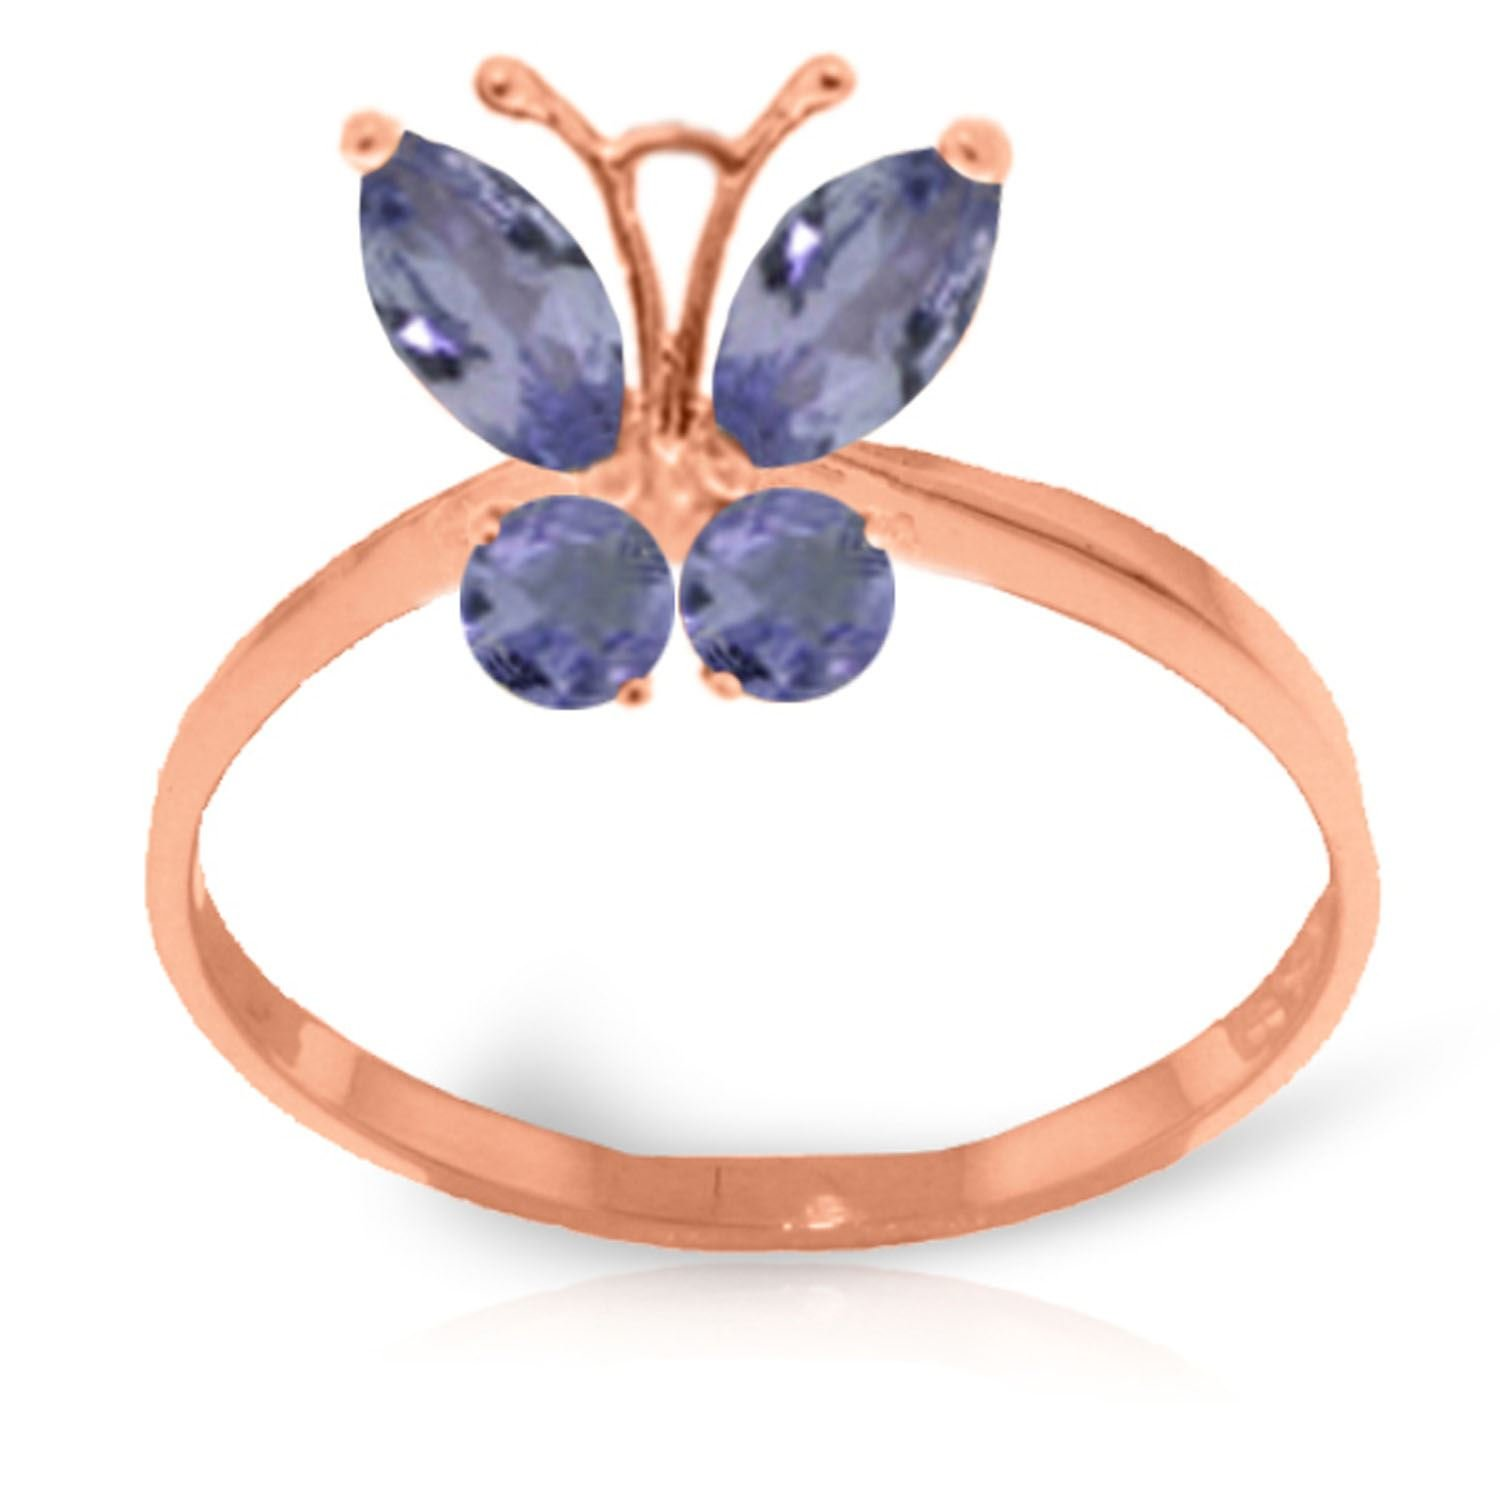 ALARRI 0.6 CTW 14K Solid Rose Gold Butterfly Ring Natural Tanzanite With Ring Size 6.5